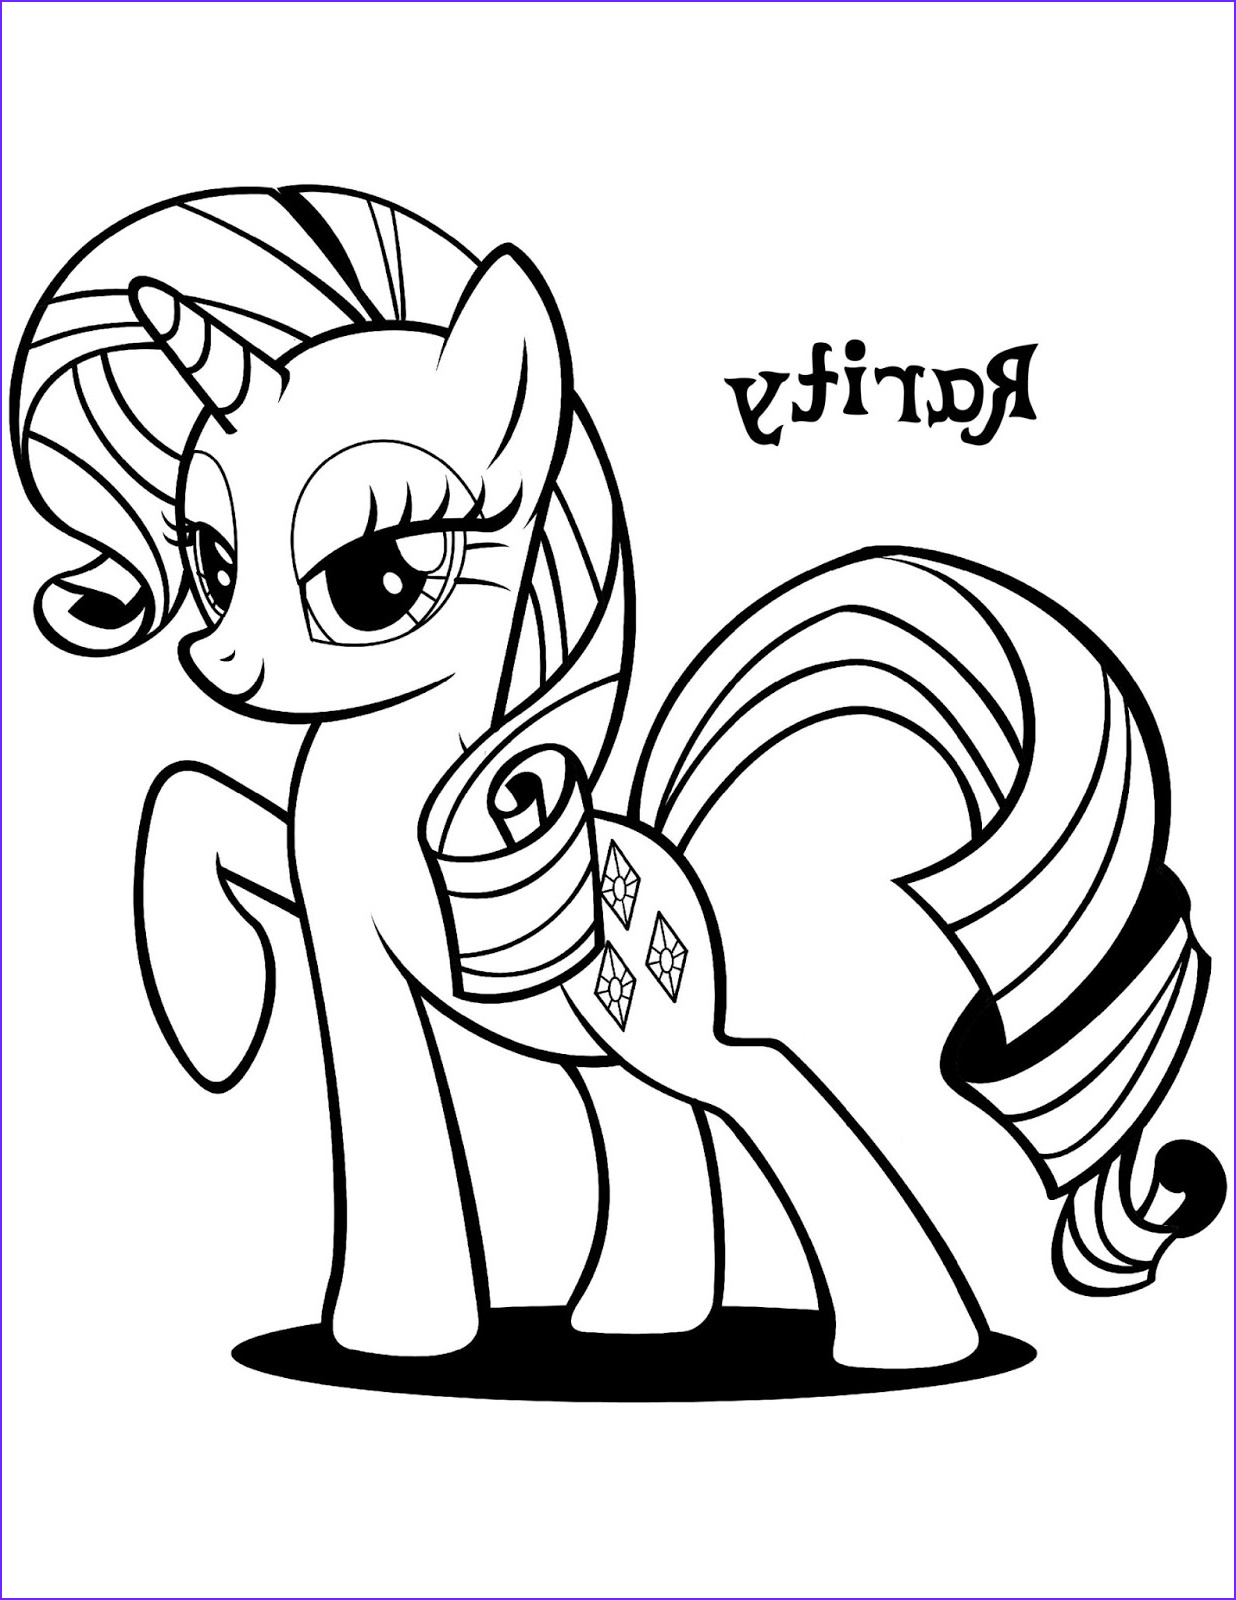 My Little Pony Coloring Sheets Inspirational Photos My Little Pony Coloring Sheets 2018 Dr Odd